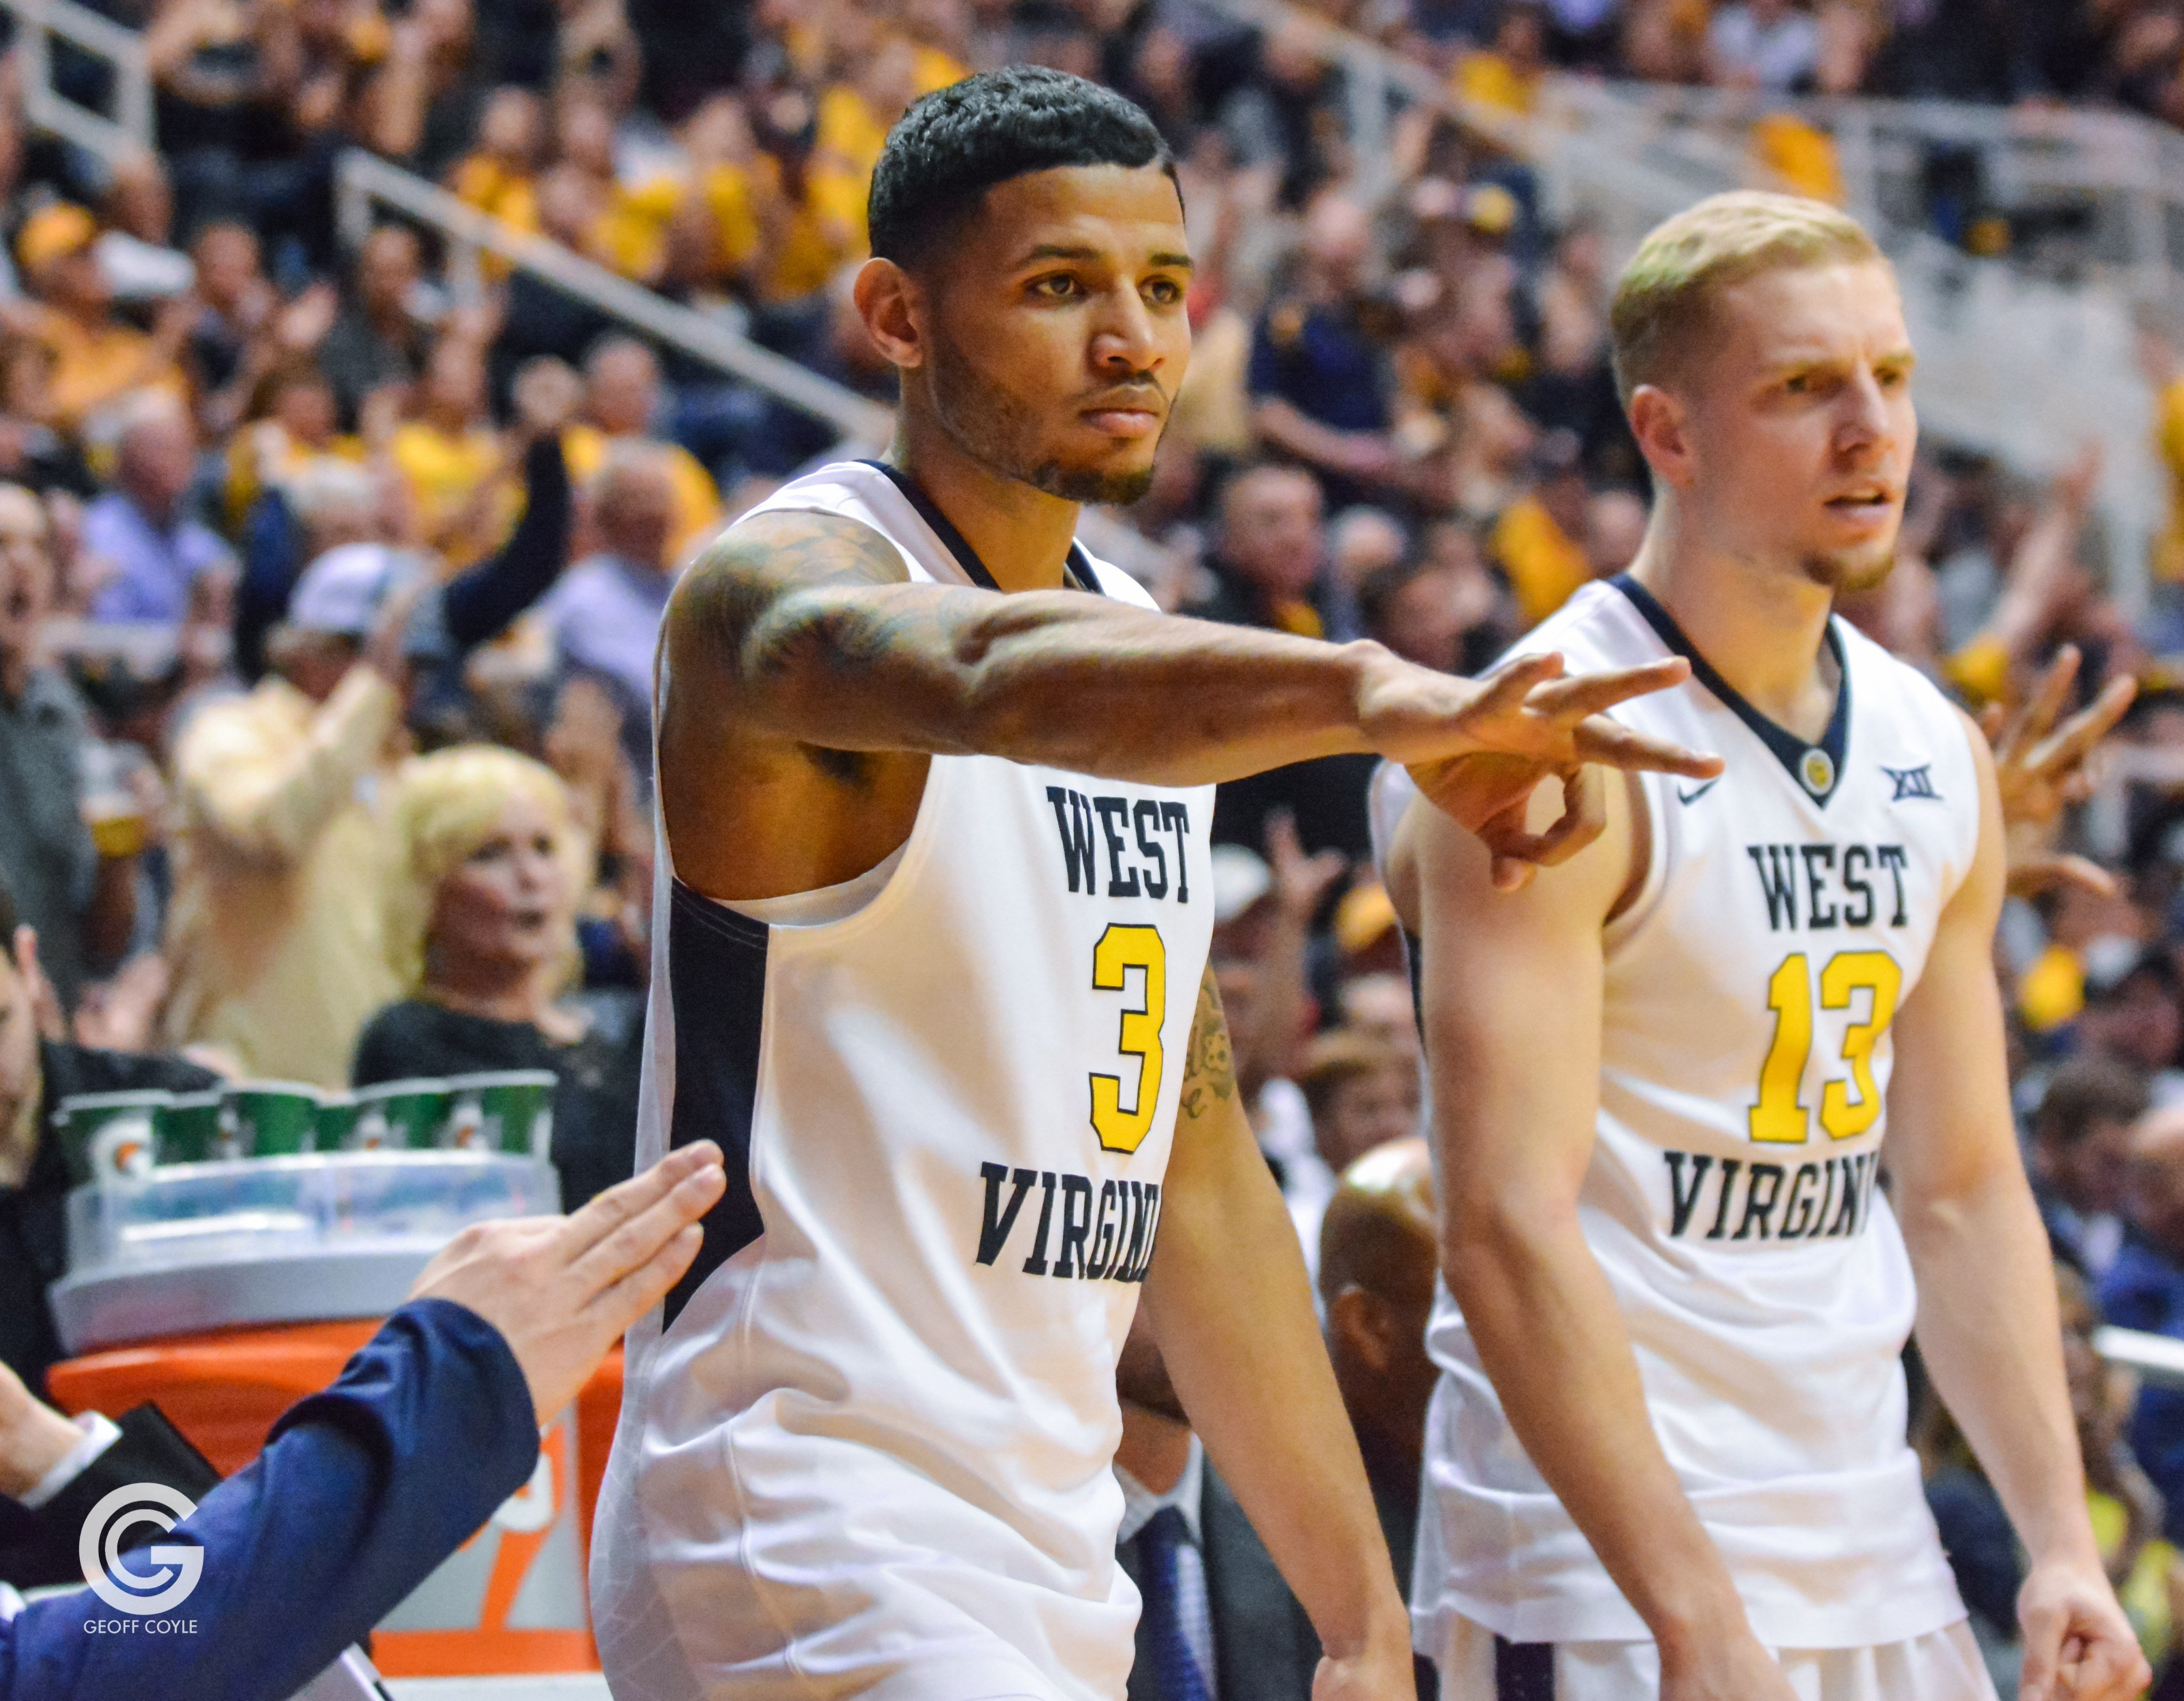 "James ""Beetle"" Bolden signals a 3-pointer for the Mountaineers. (PHOTO: Geoff Coyle)"